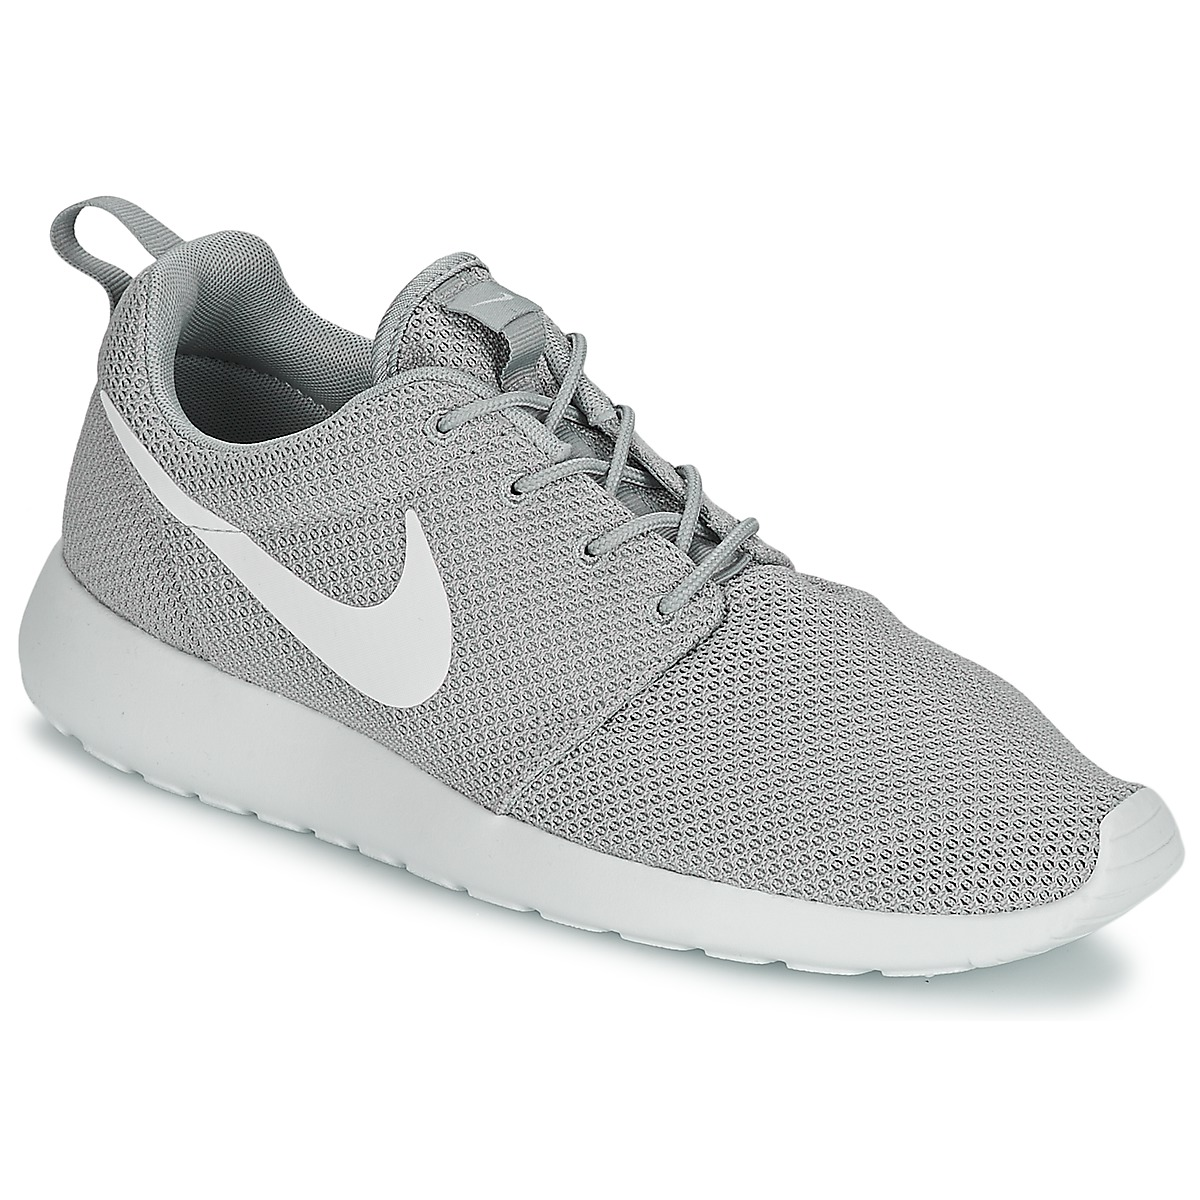 d94df0155749 80%OFF Nike ROSHE RUN Grey White Shoes Low top trainers Men ...